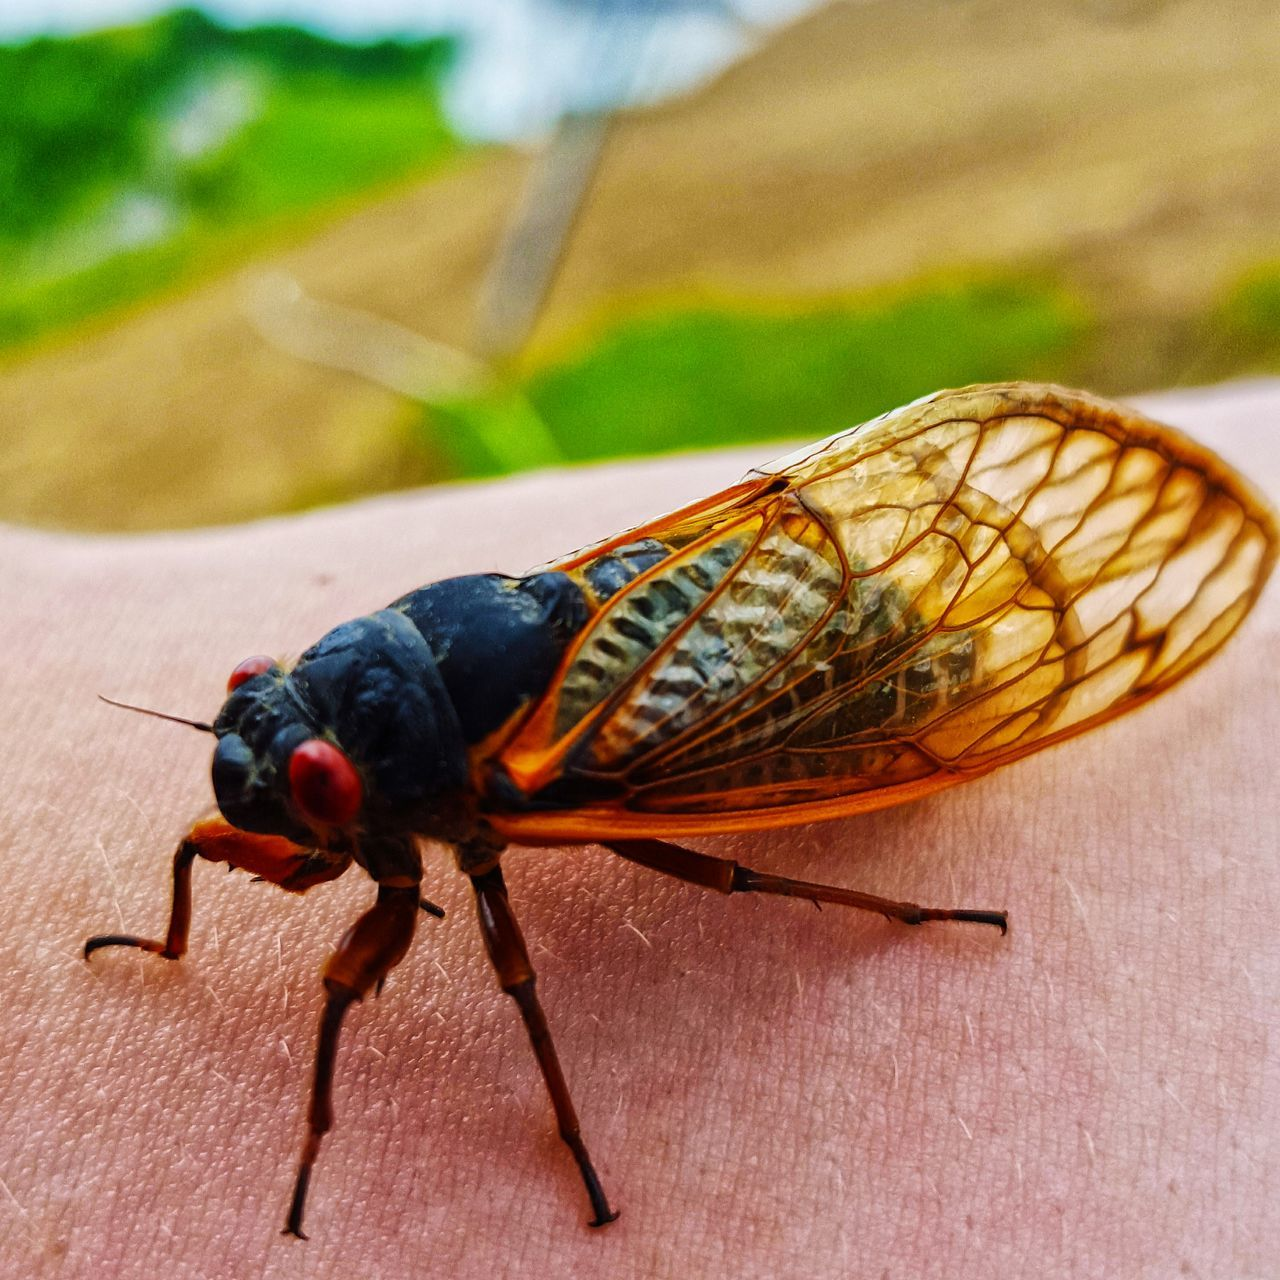 invertebrate, insect, animal themes, animal, one animal, animals in the wild, animal wildlife, close-up, focus on foreground, no people, day, animal body part, animal wing, outdoors, nature, zoology, wood - material, full length, macro, animal antenna